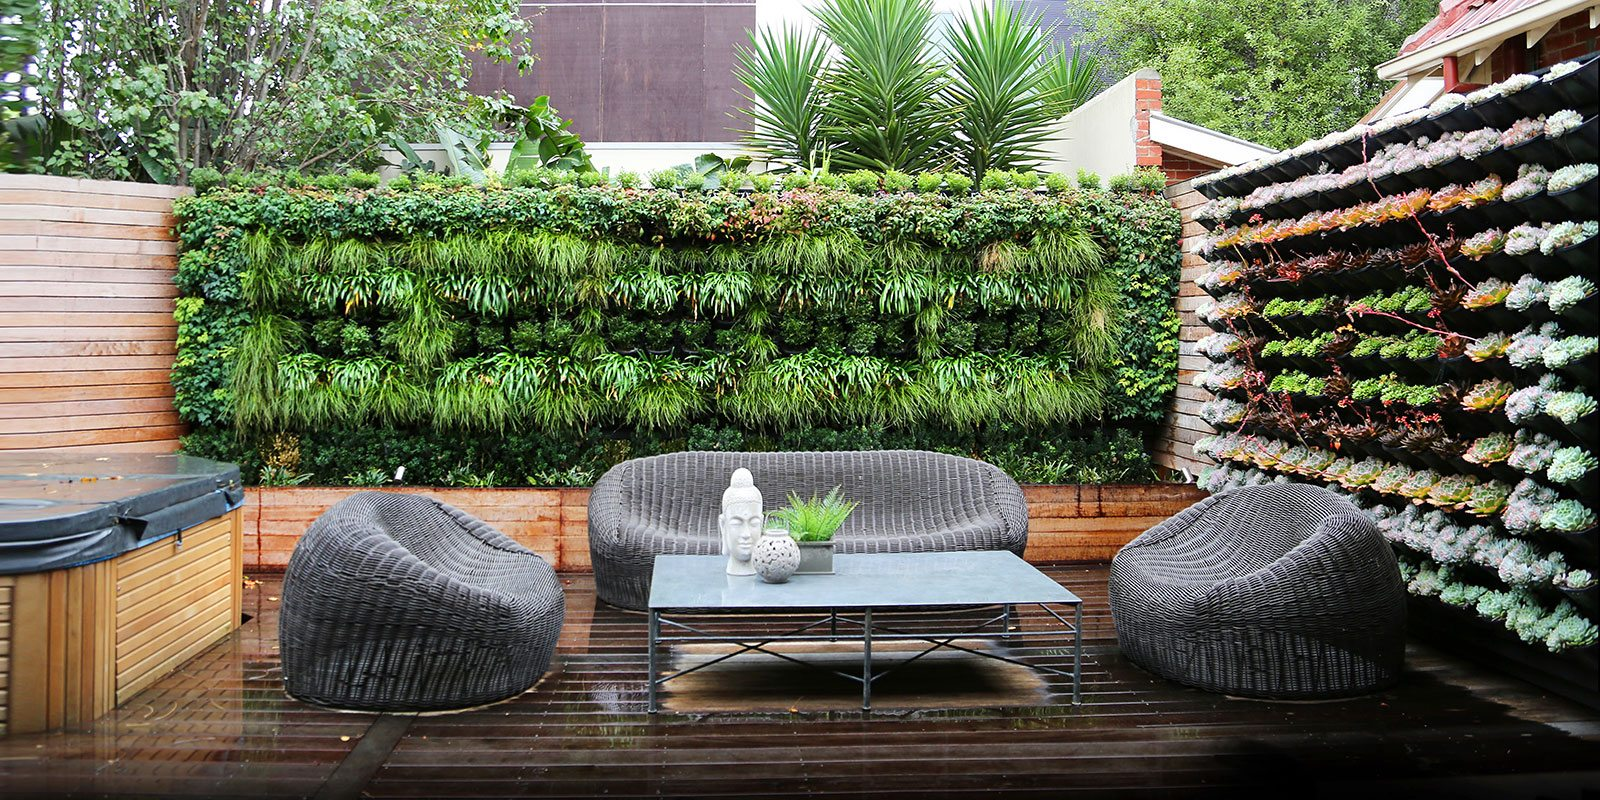 landscape design vertical wall gardens melbourne. Black Bedroom Furniture Sets. Home Design Ideas